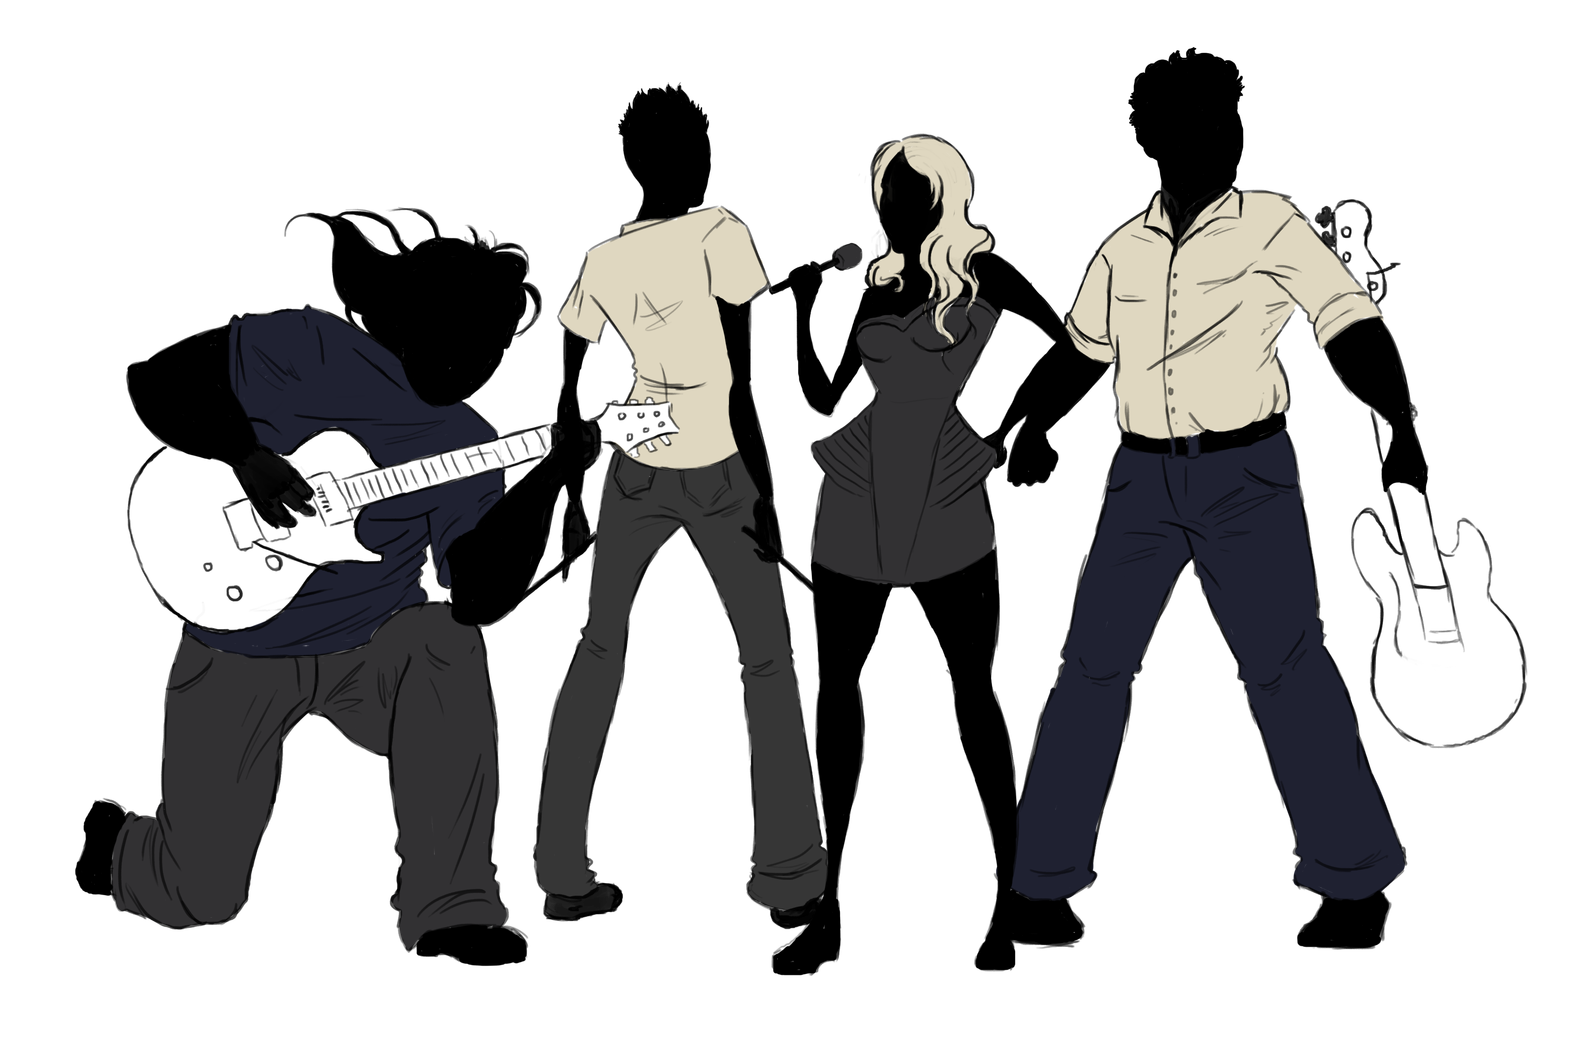 Jazz band silhouette png. Rock musical ensemble transprent